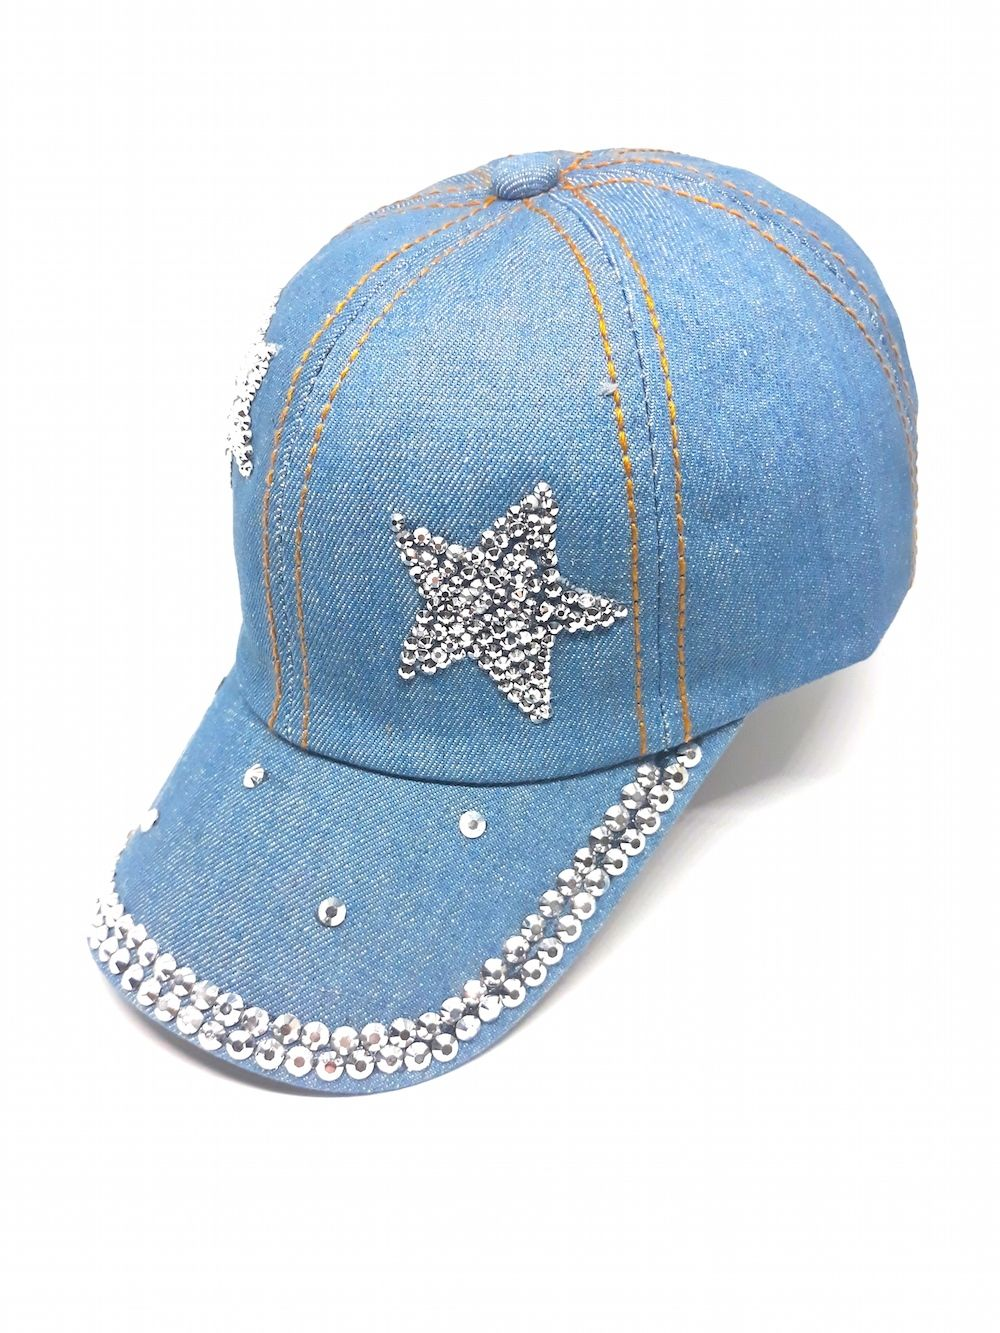 4ad477f5a21 Buy CK Women Star Jeans Hat For Summer   Night Parties in Egypt